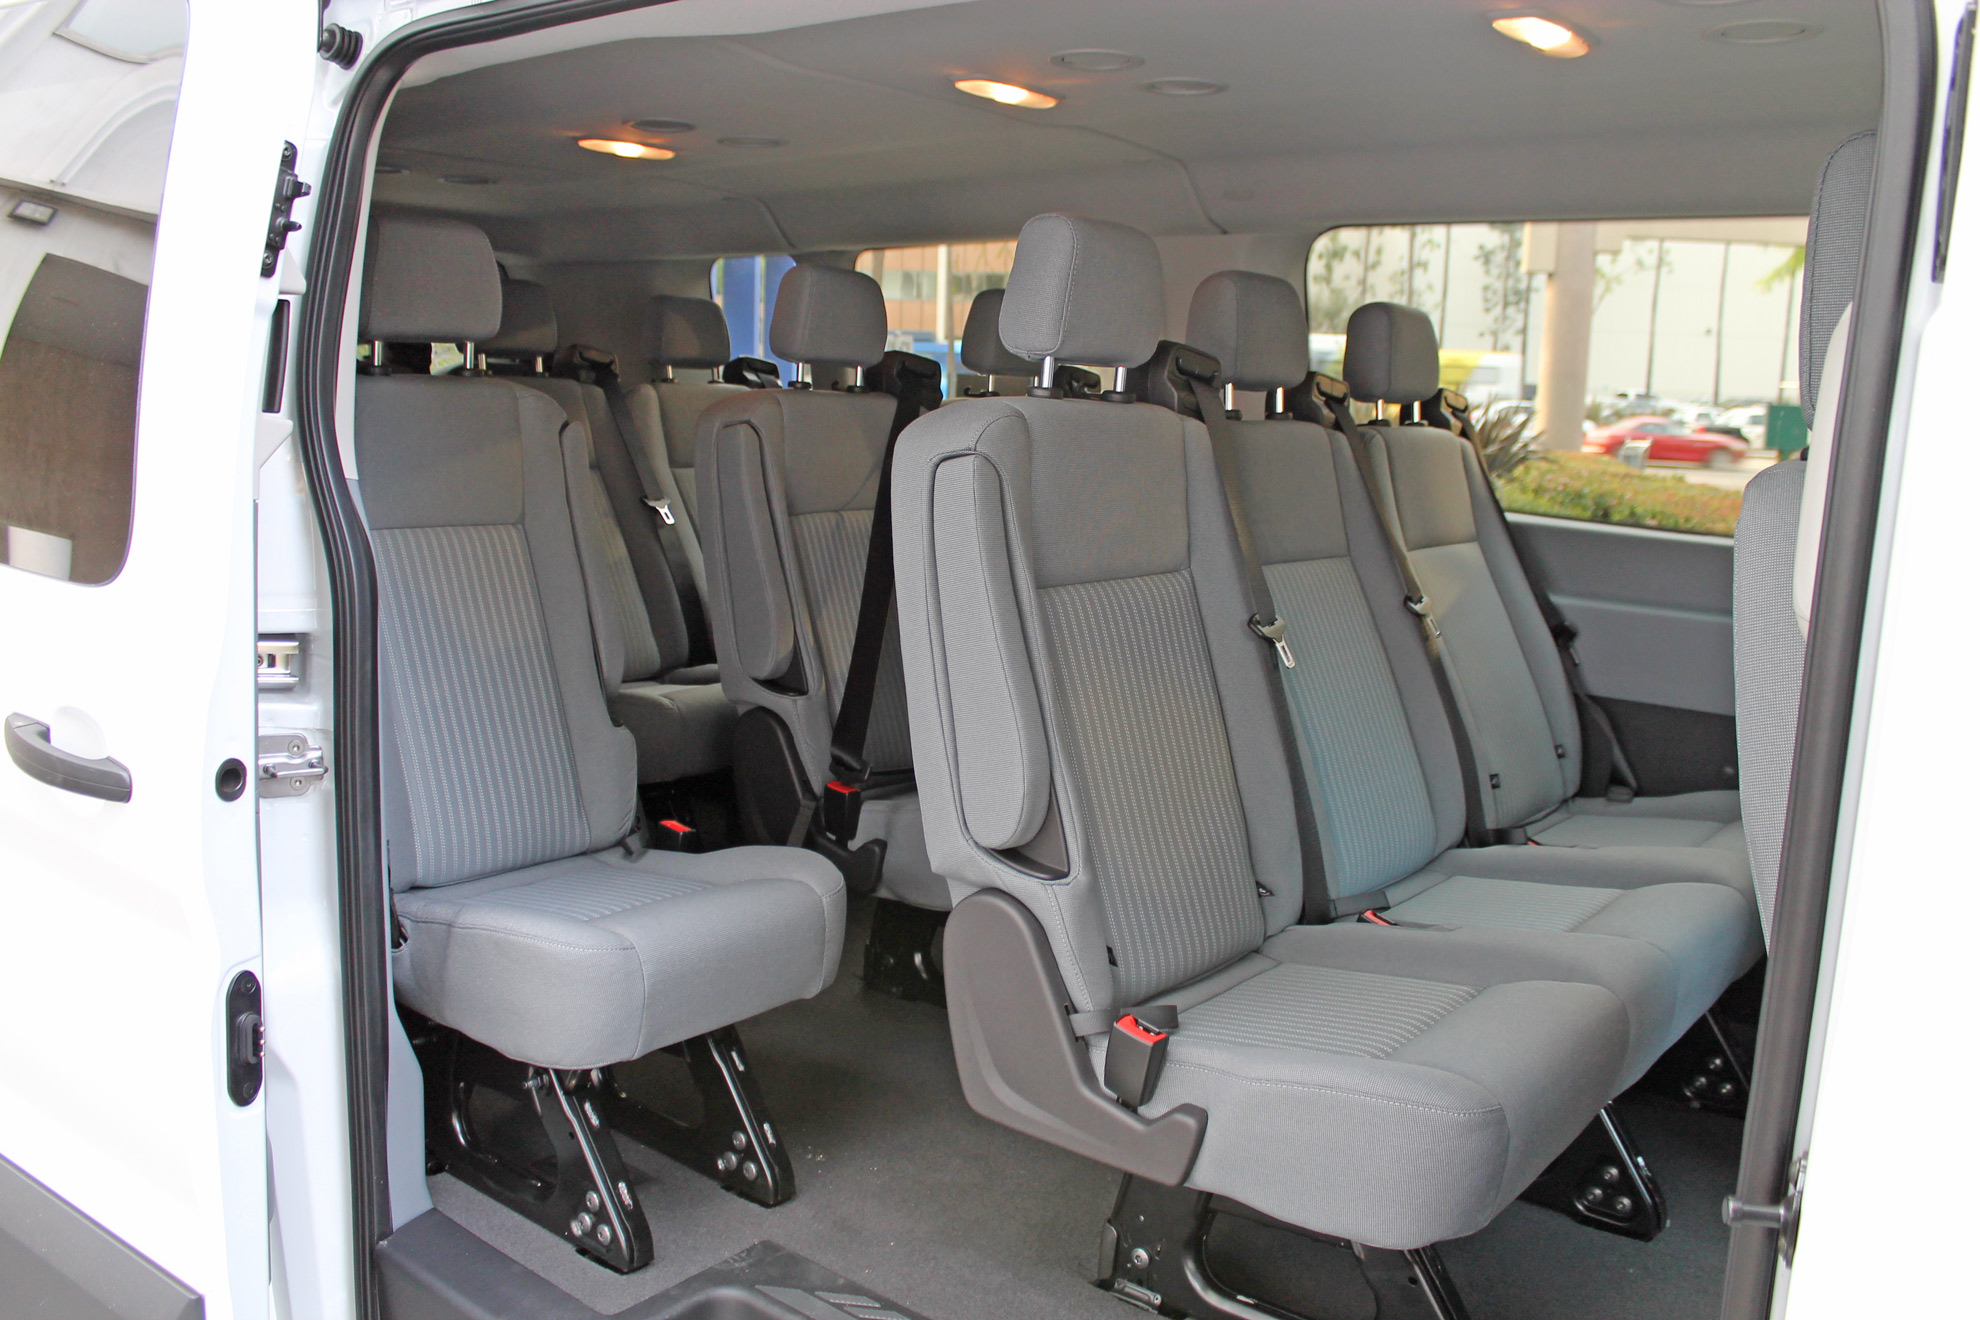 Ford Transit - Ace Charters Vancouver Tours Fleet - Vancouver Tour - Vancouver Tours - Vancouver City Tours